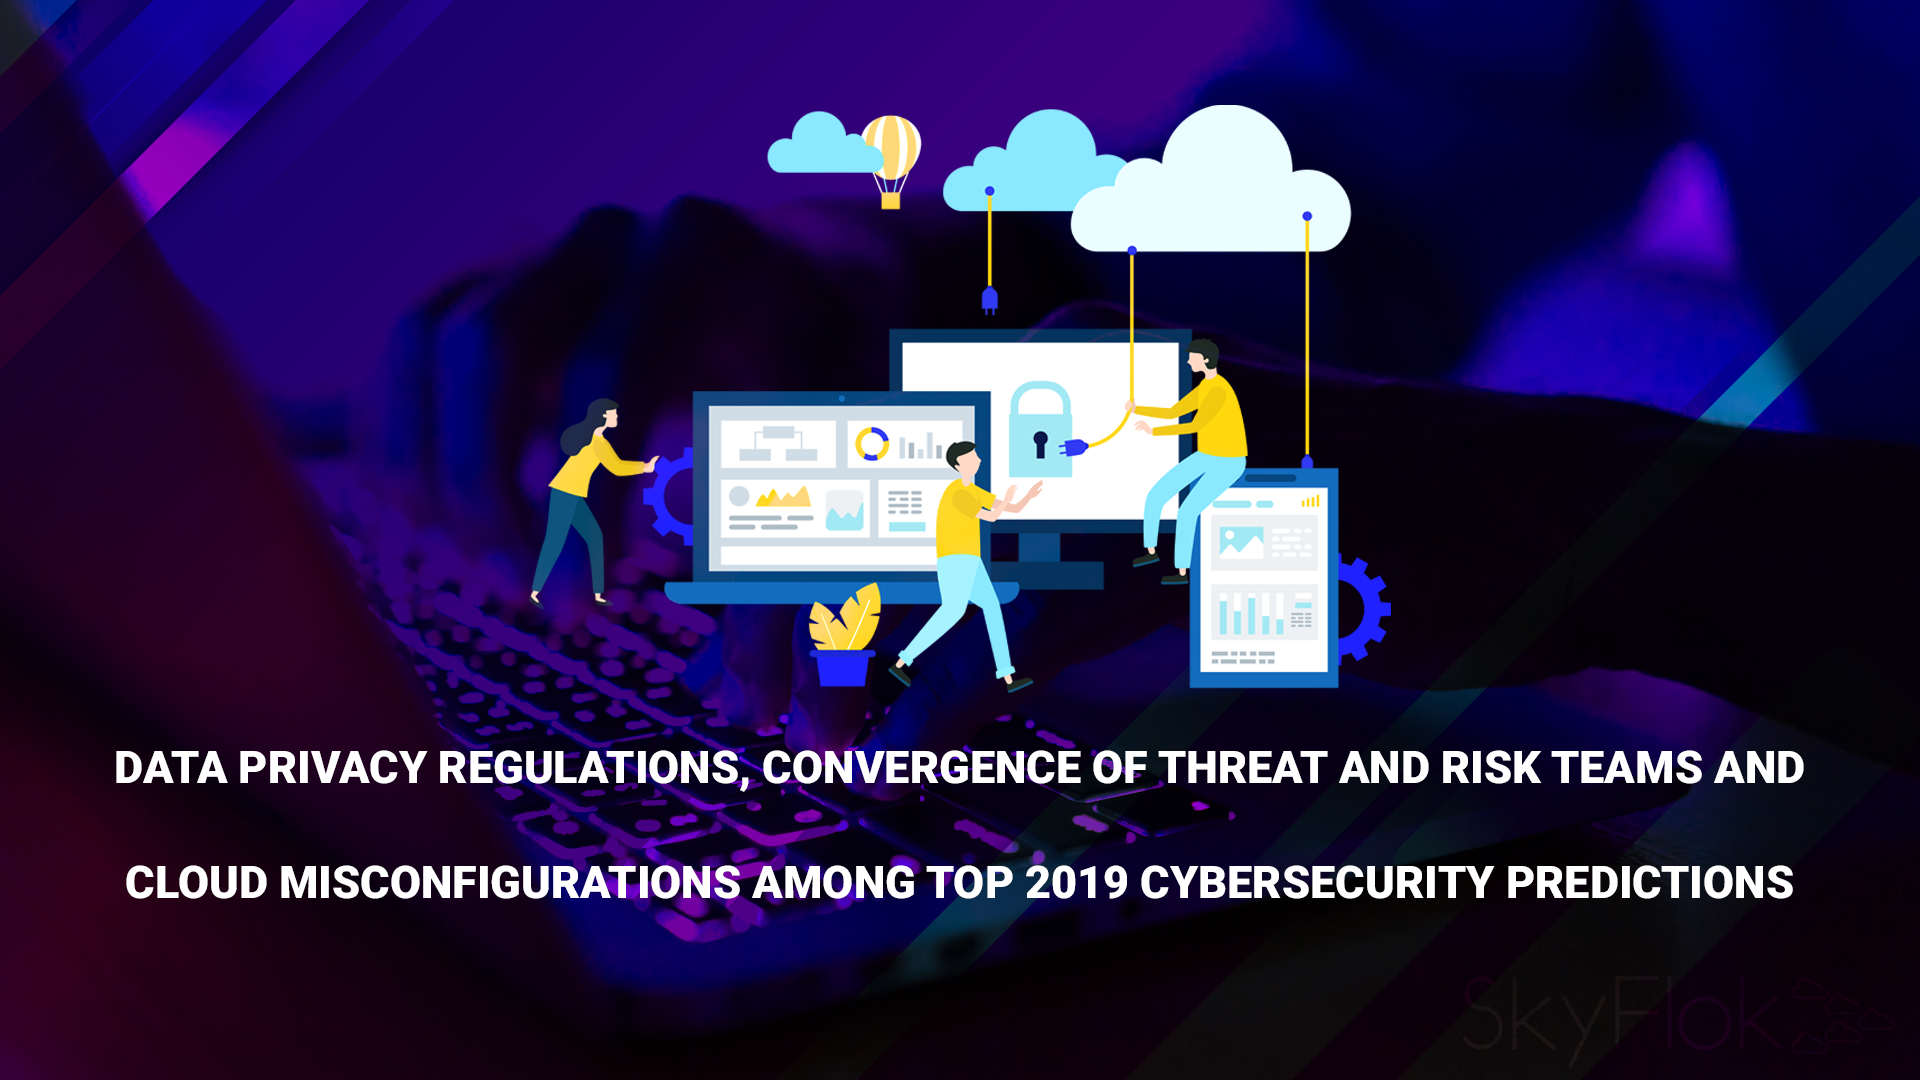 Data Privacy Regulations, Convergence of Threat and Risk Teams and Cloud Misconfigurations Among Top 2019 Cybersecurity Predictions